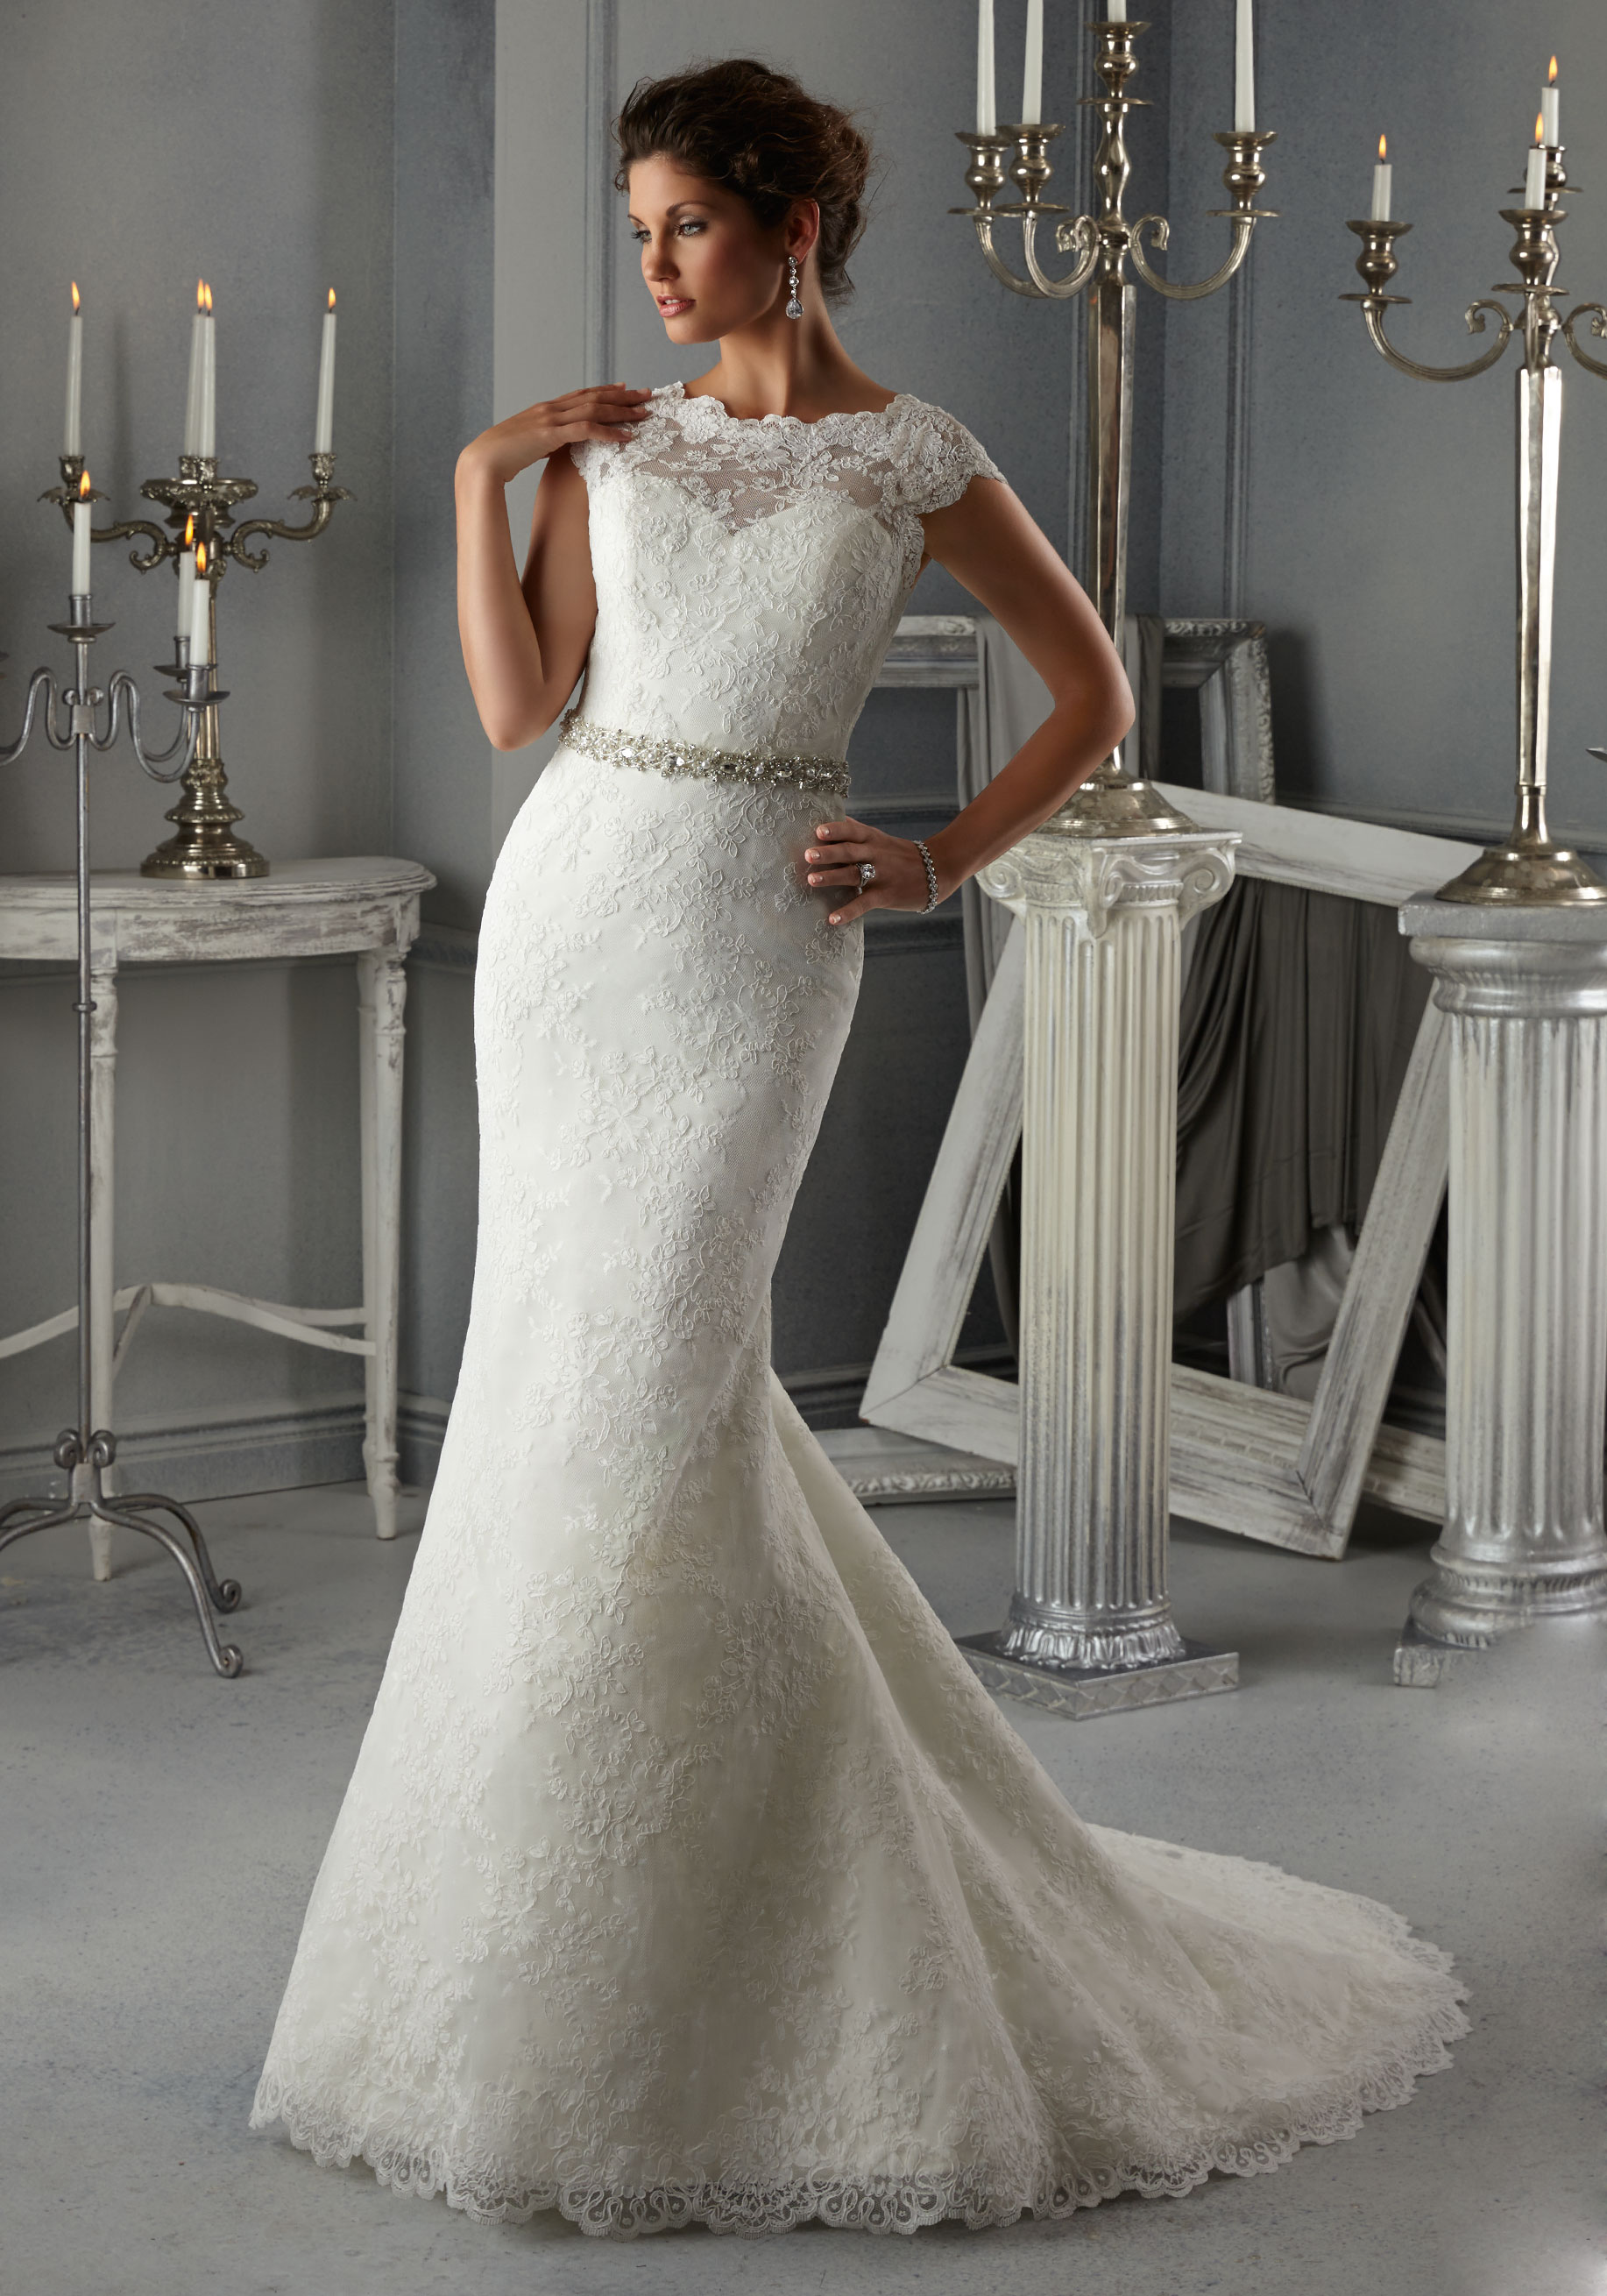 Allover Lace Wedding Dress